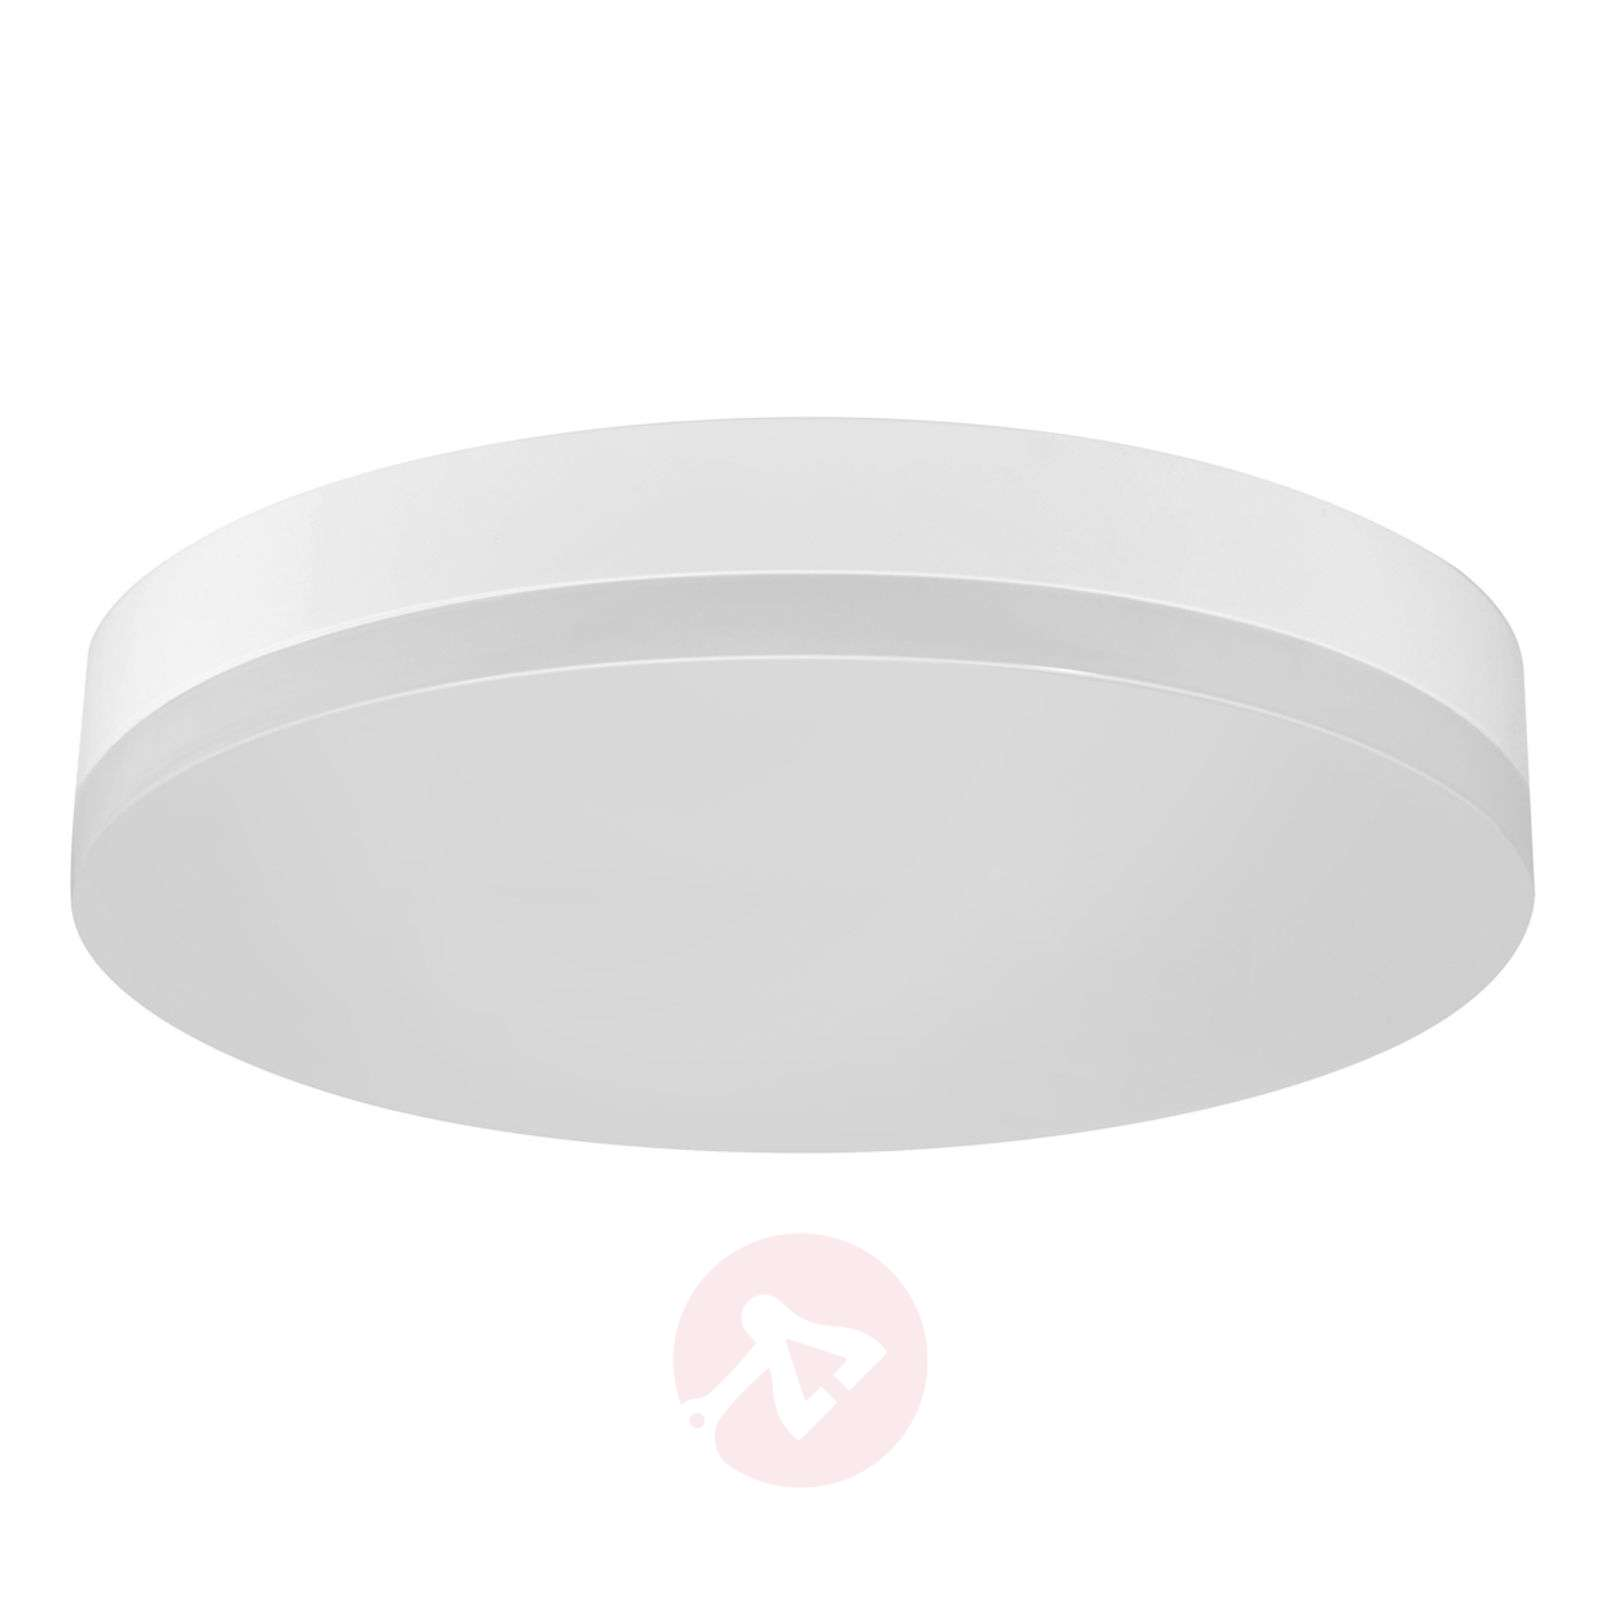 Office Round LED plafondlamp IP44, warm wit-8559228-01